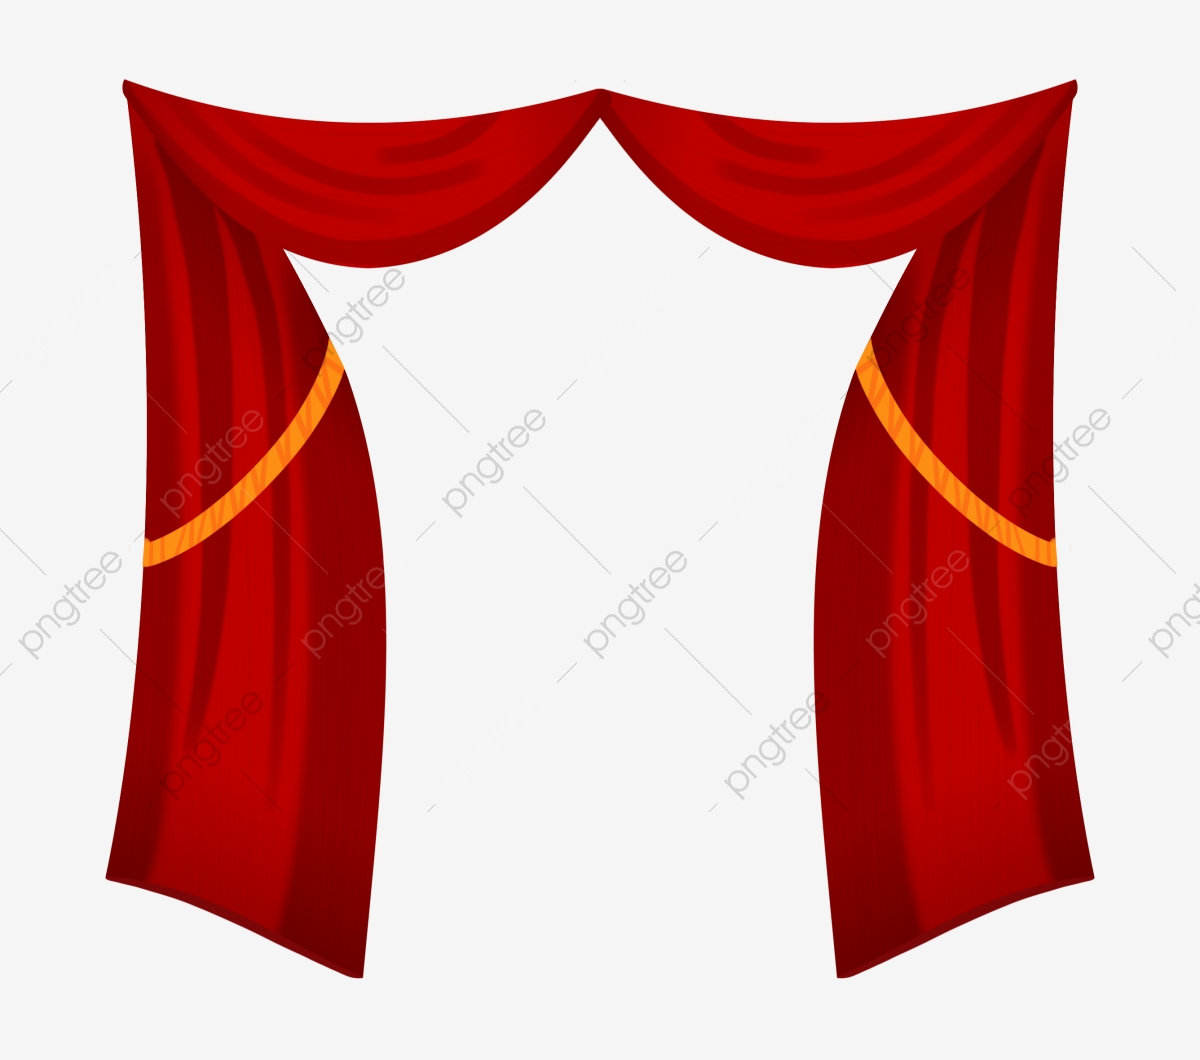 https pngtree com freepng hand painted red curtain open curtain illustration red curtain beautiful curtain 3905766 html